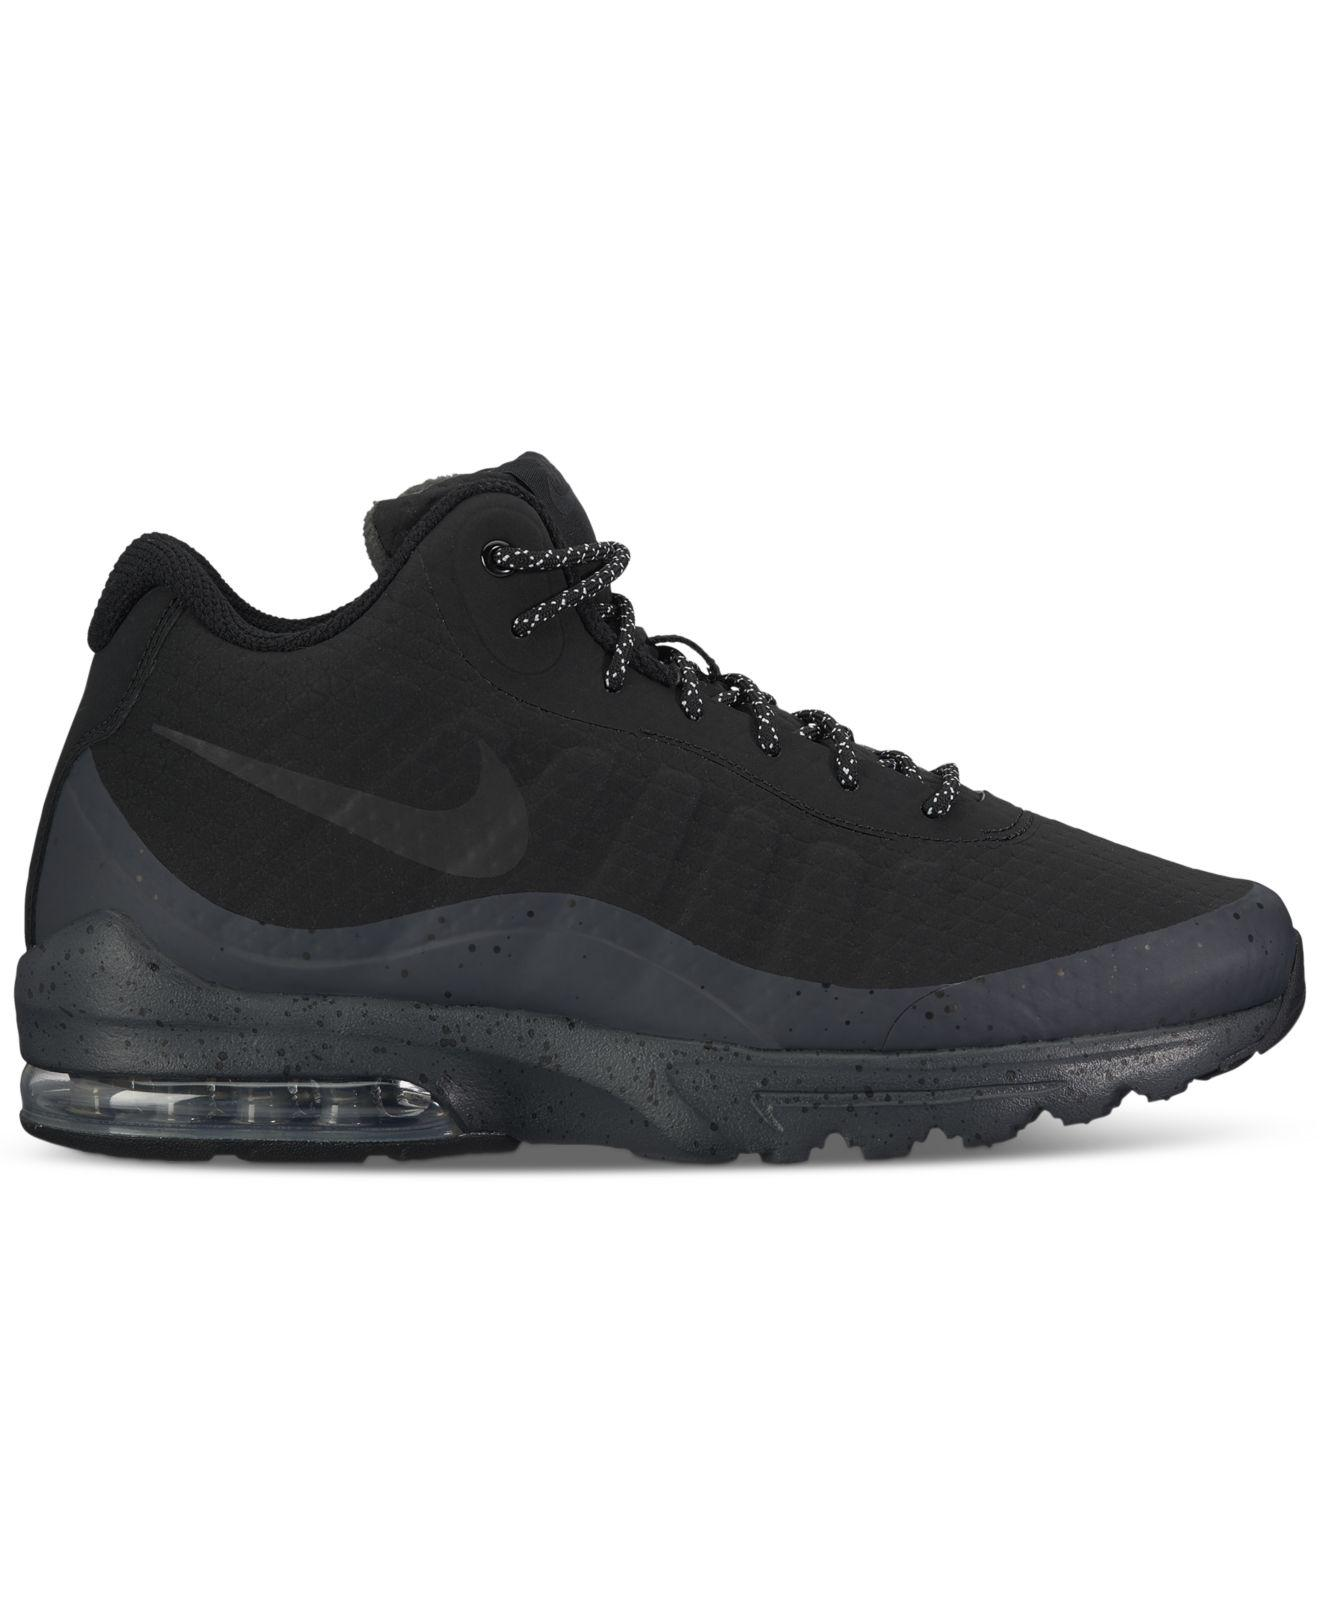 3326b7d2c19c Lyst - Nike Men s Air Max Invigor Mid Running Sneakers From Finish Line in  Black for Men